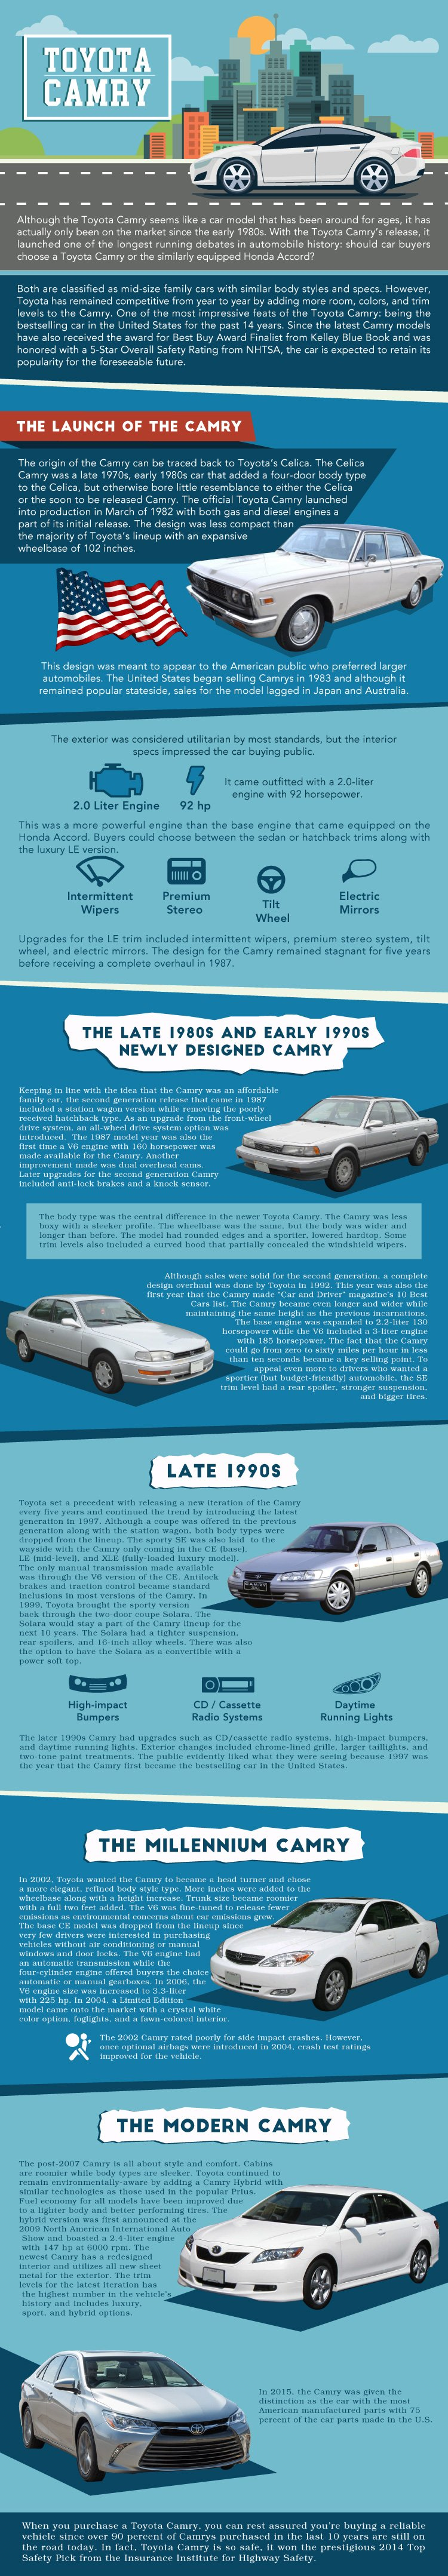 Toyota Camry Windshield Replacement Best Prices 2018 1993 V6 Engine Parts Diagram History Of The Toyotacamry Infographic